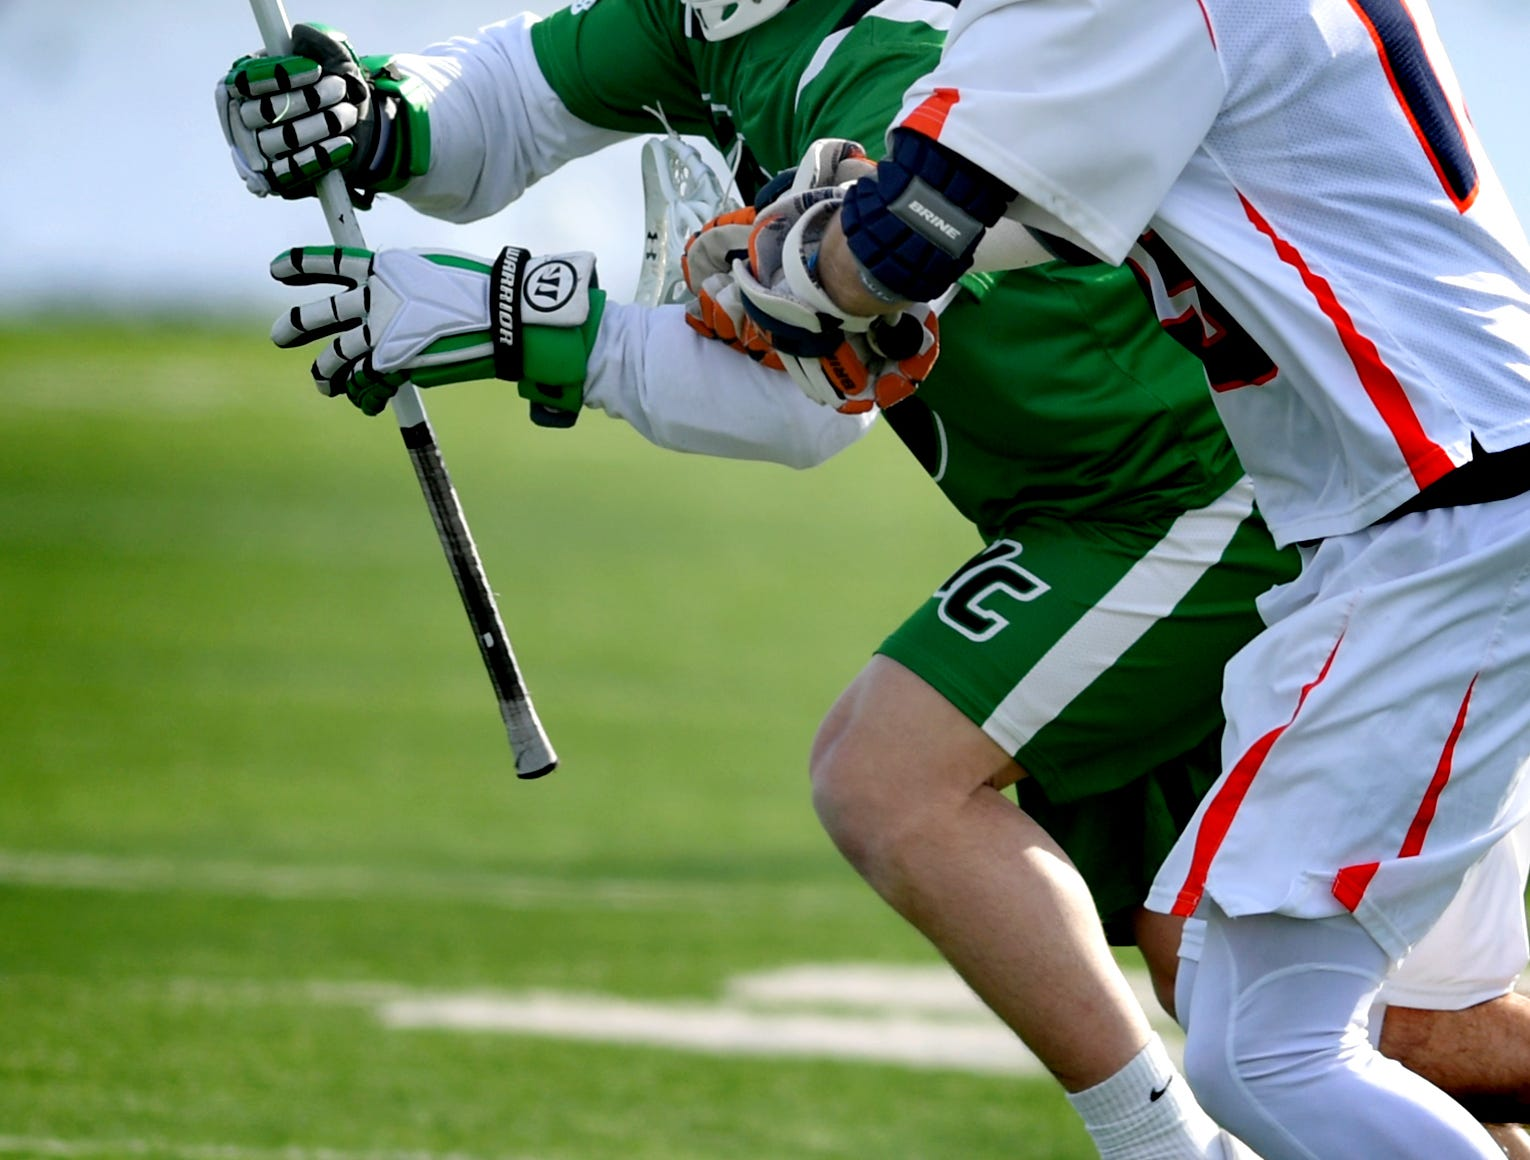 York College earns a 14-6 win over host Gettysburg College Wednesday, March 6, 2019. Both teams were ranked in the top 10 nationally in NCAA Division III men's lacrosse coming into the game. Bill Kalina photo